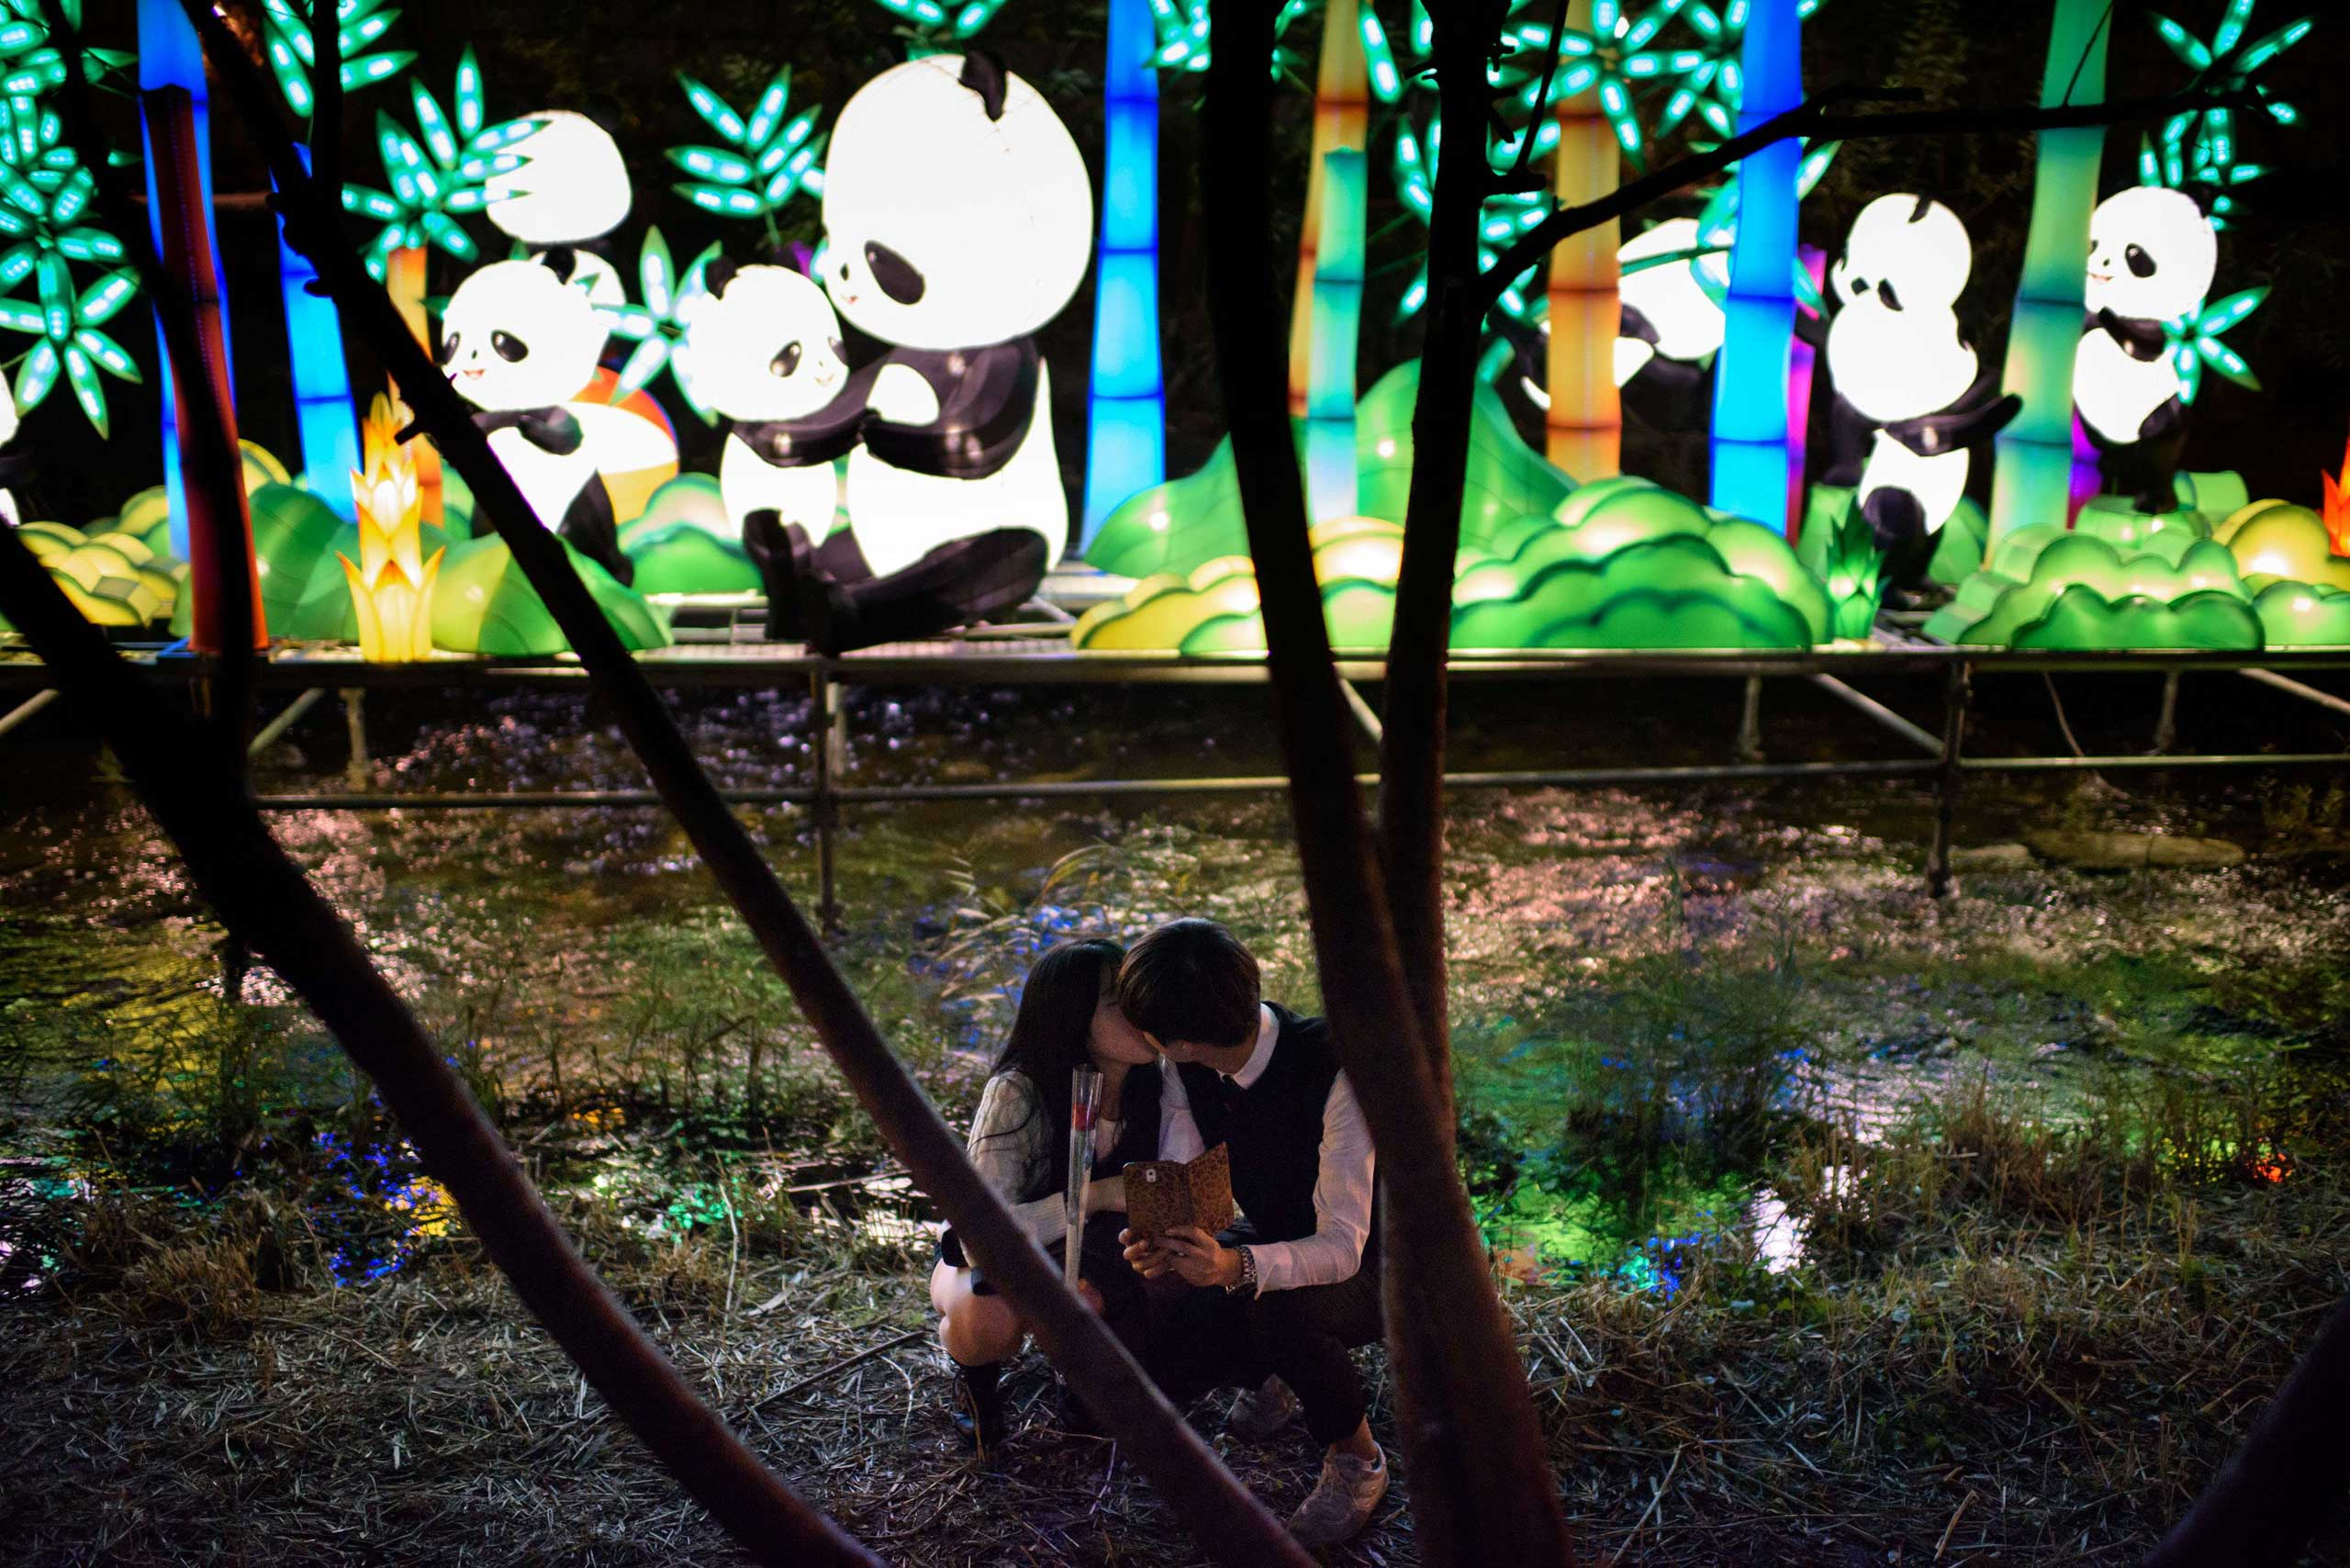 Nov. 6, 2014. A couple kisses before a display of illuminated panda lanterns on the banks of the Cheonggyecheon stream in central Seoul during the sixth annual lantern festival. The festival, which runs for 17 days, aims to promote cultural and historical awareness through four themed sections.